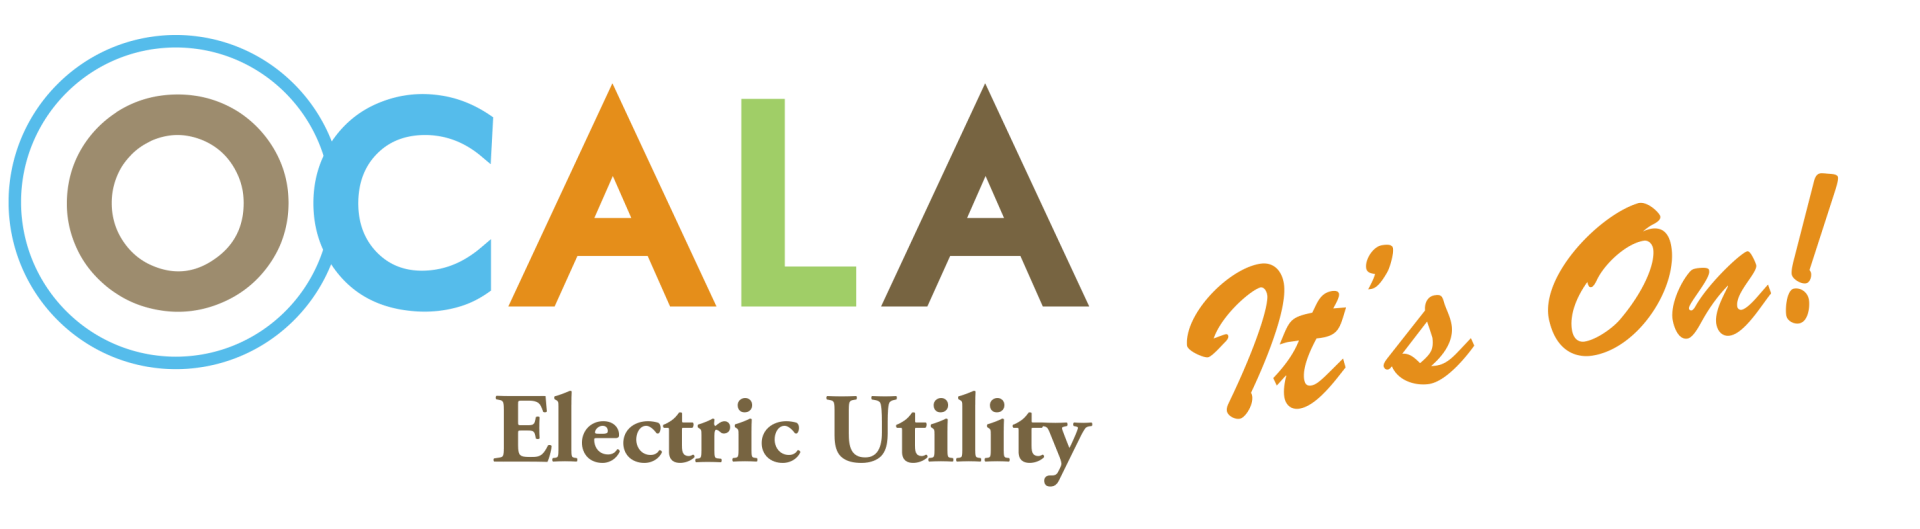 Ocala Electric Utilities